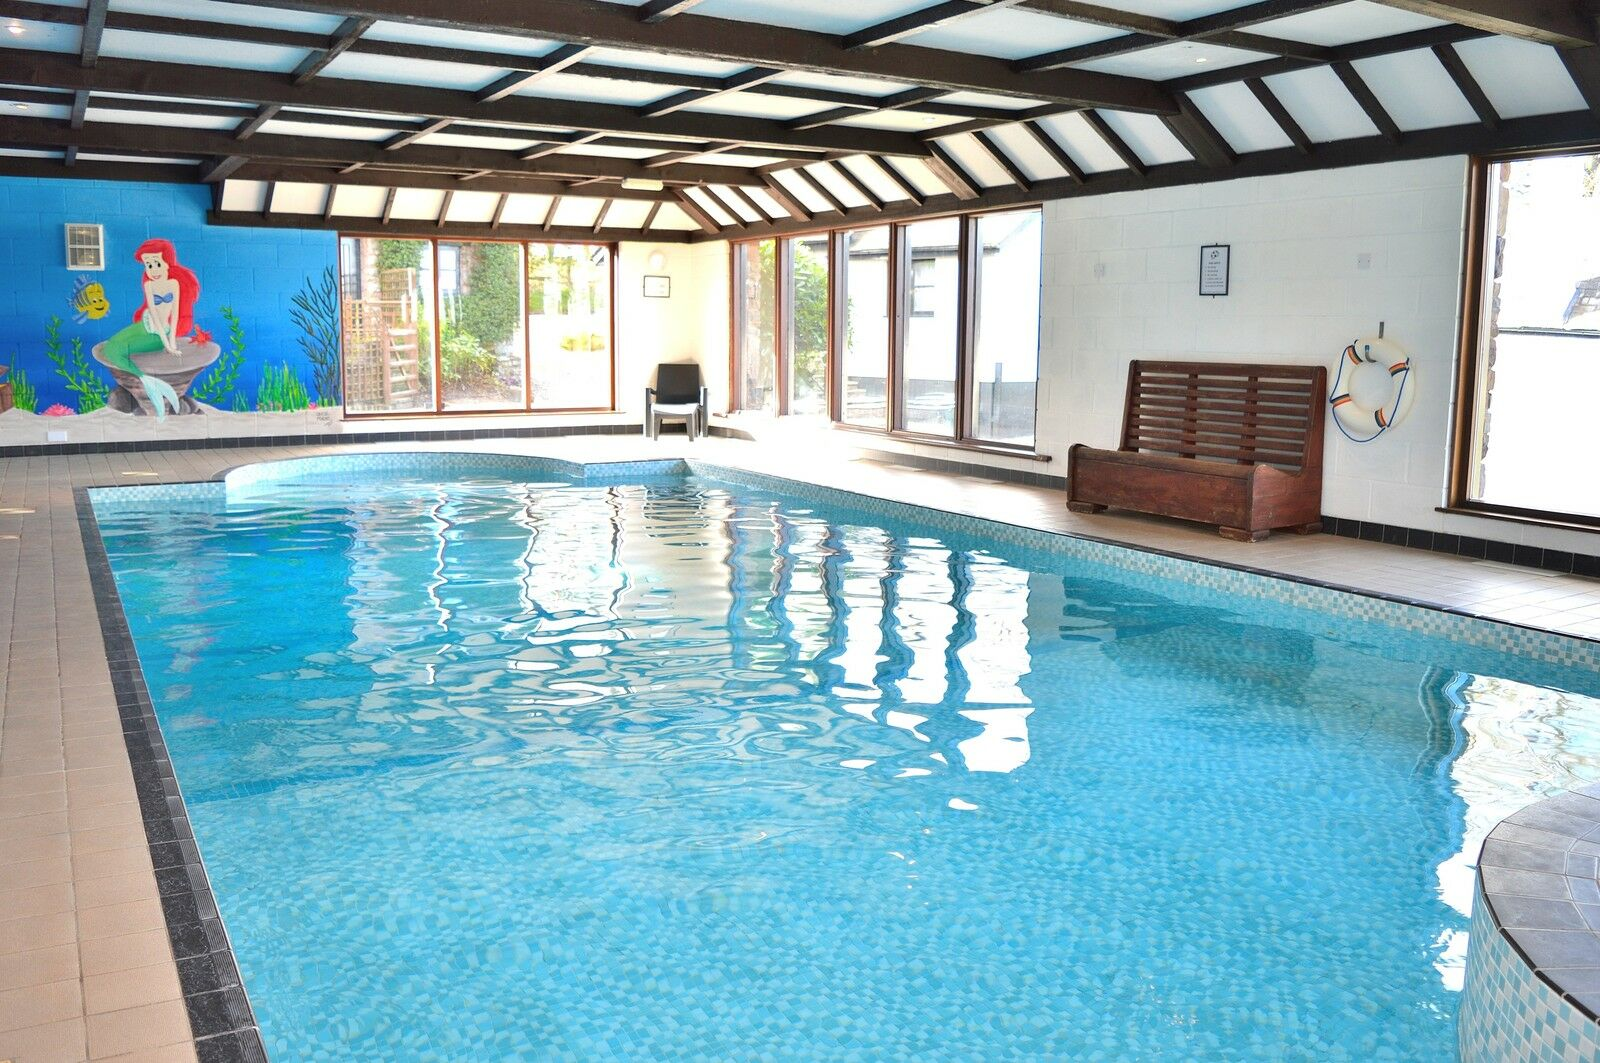 Devon Holiday Cottage With Indoor Pool Last Minute Offers And Availability Picclick Uk